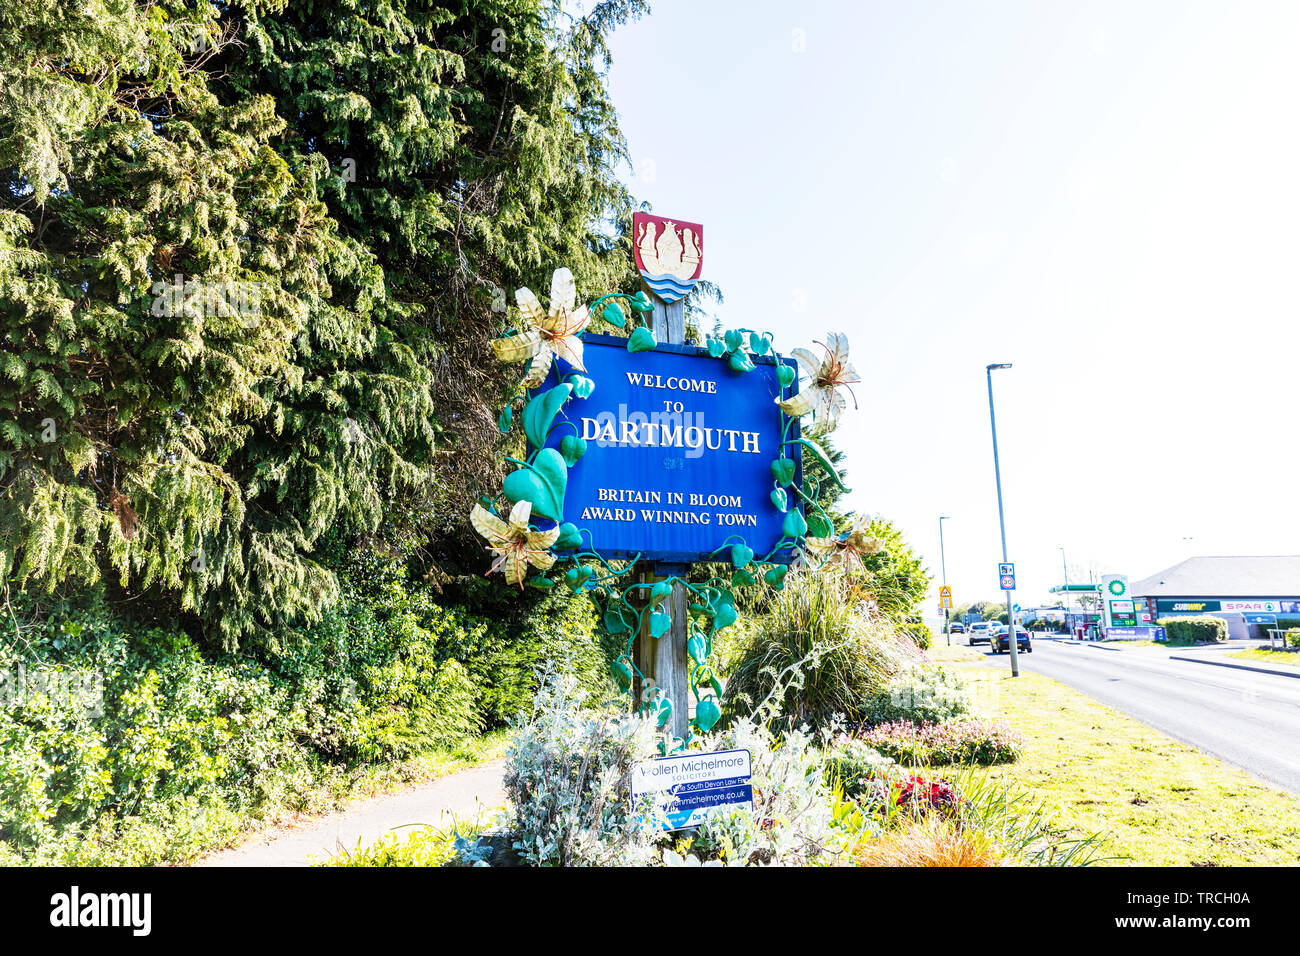 Welcome to Dartmouth sign, Dartmouth, Devon, UK, England, Dartmouth Devon, Dartmouth UK, Dartmouth sign, sign, signs, Welcome, Dartmouth Town Devon UK Stock Photo